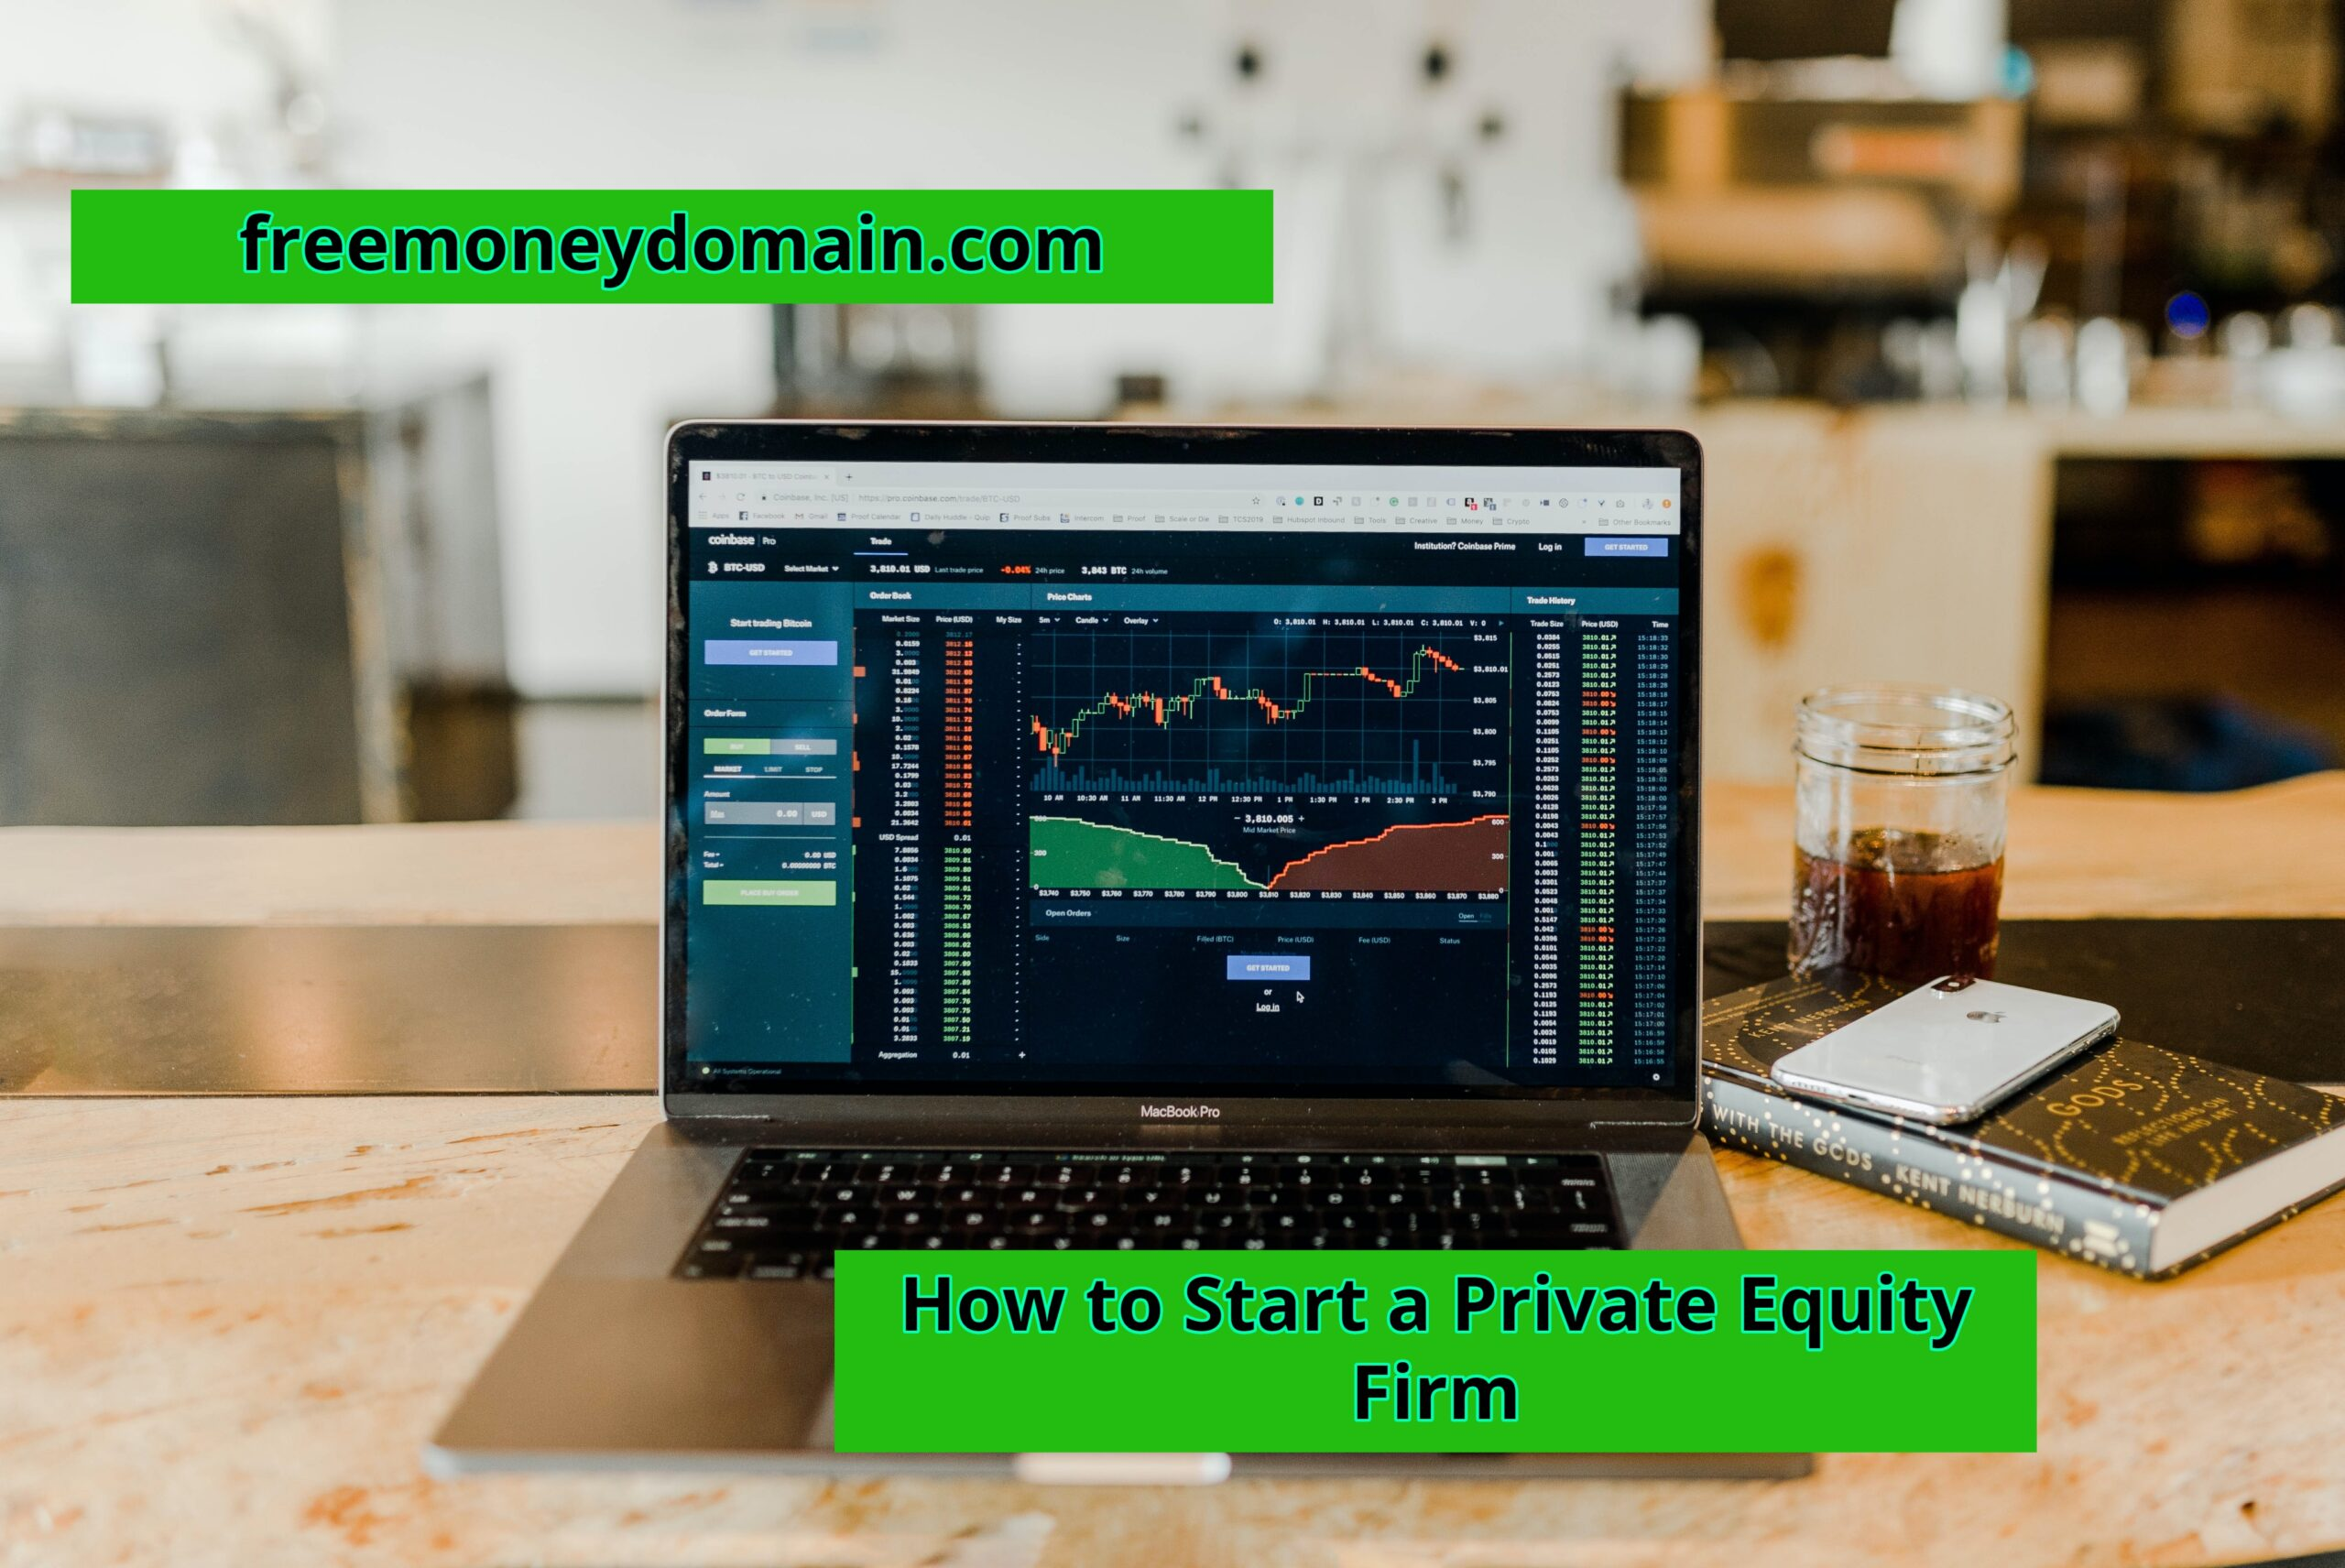 How to Start a Private Equity Firm in 2021